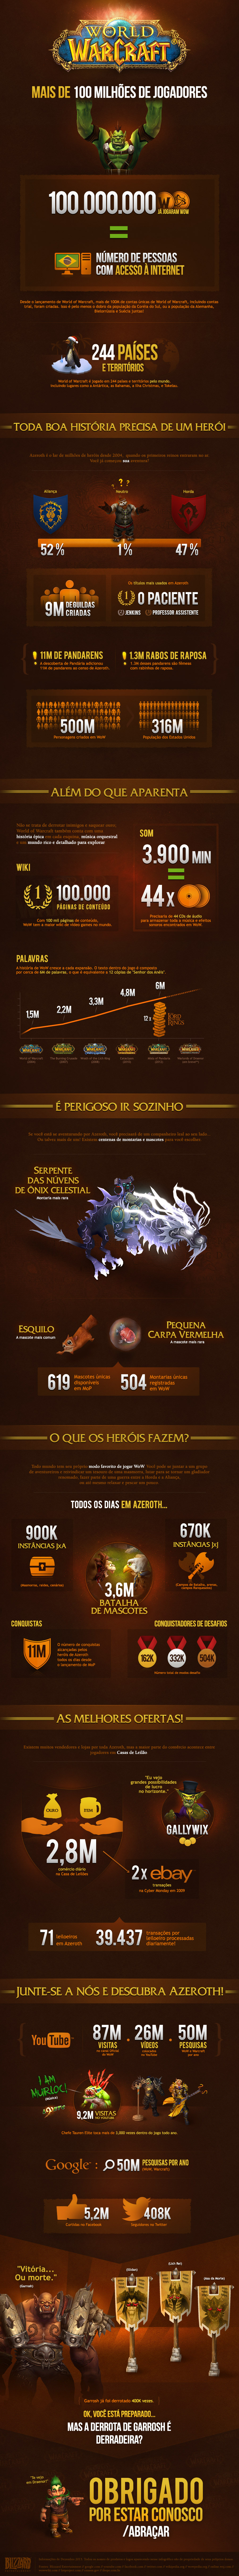 WoW_Infographic-2014_PT-BR